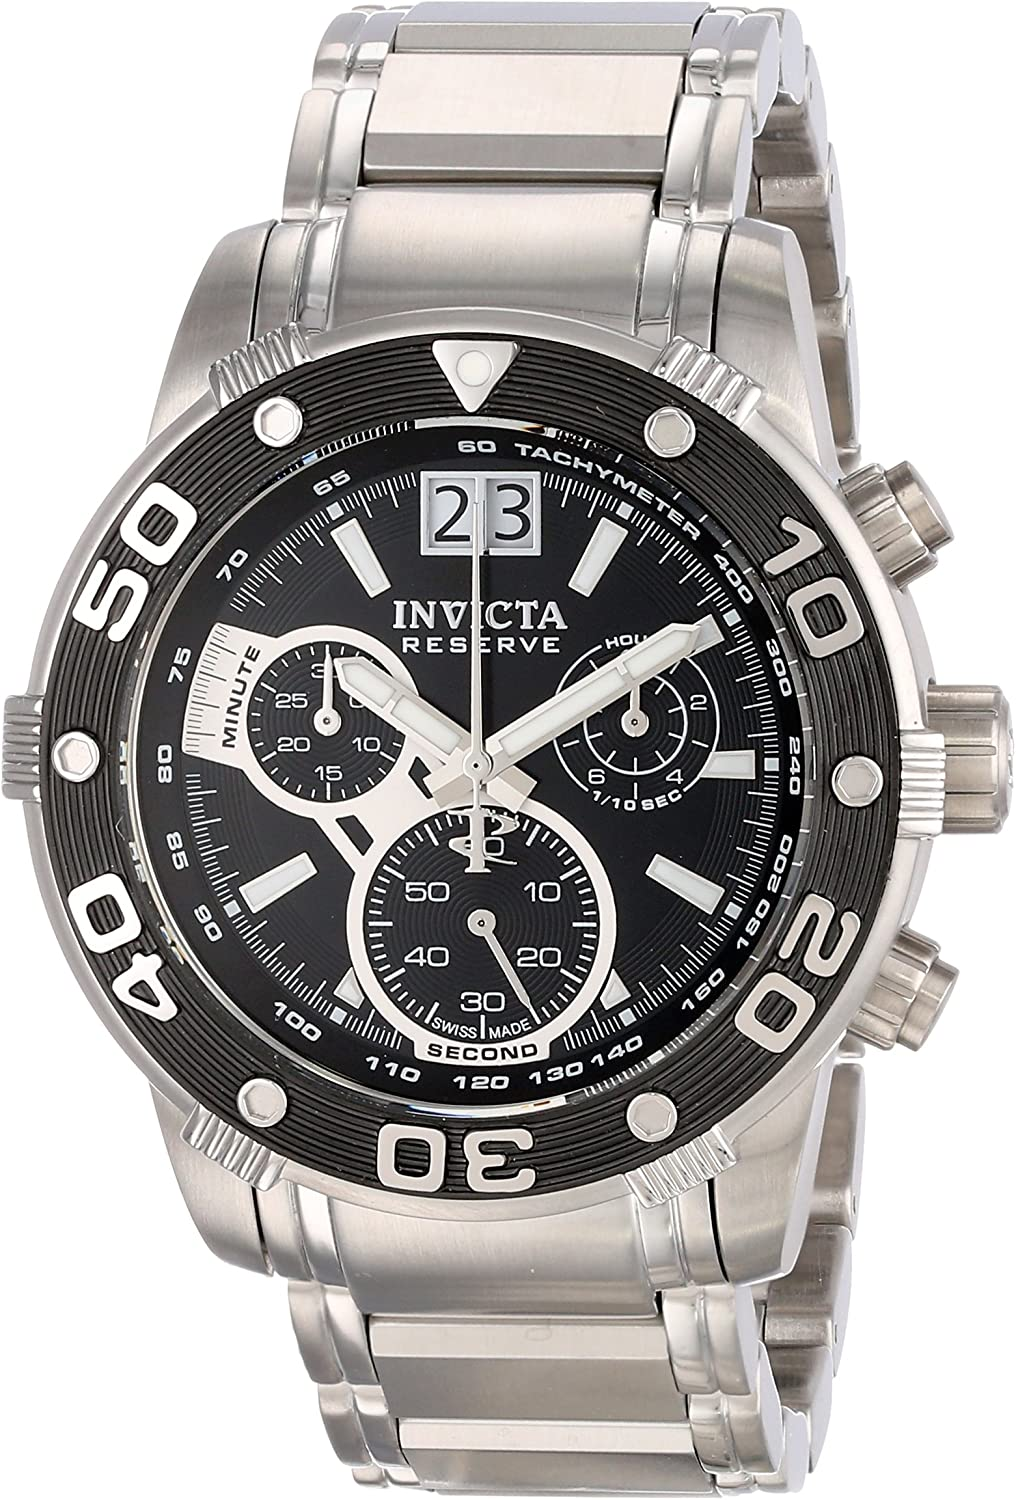 Invicta Men s 0760 Ocean Reef Reserve Chronograph Black Dial Stainless Steel Watch